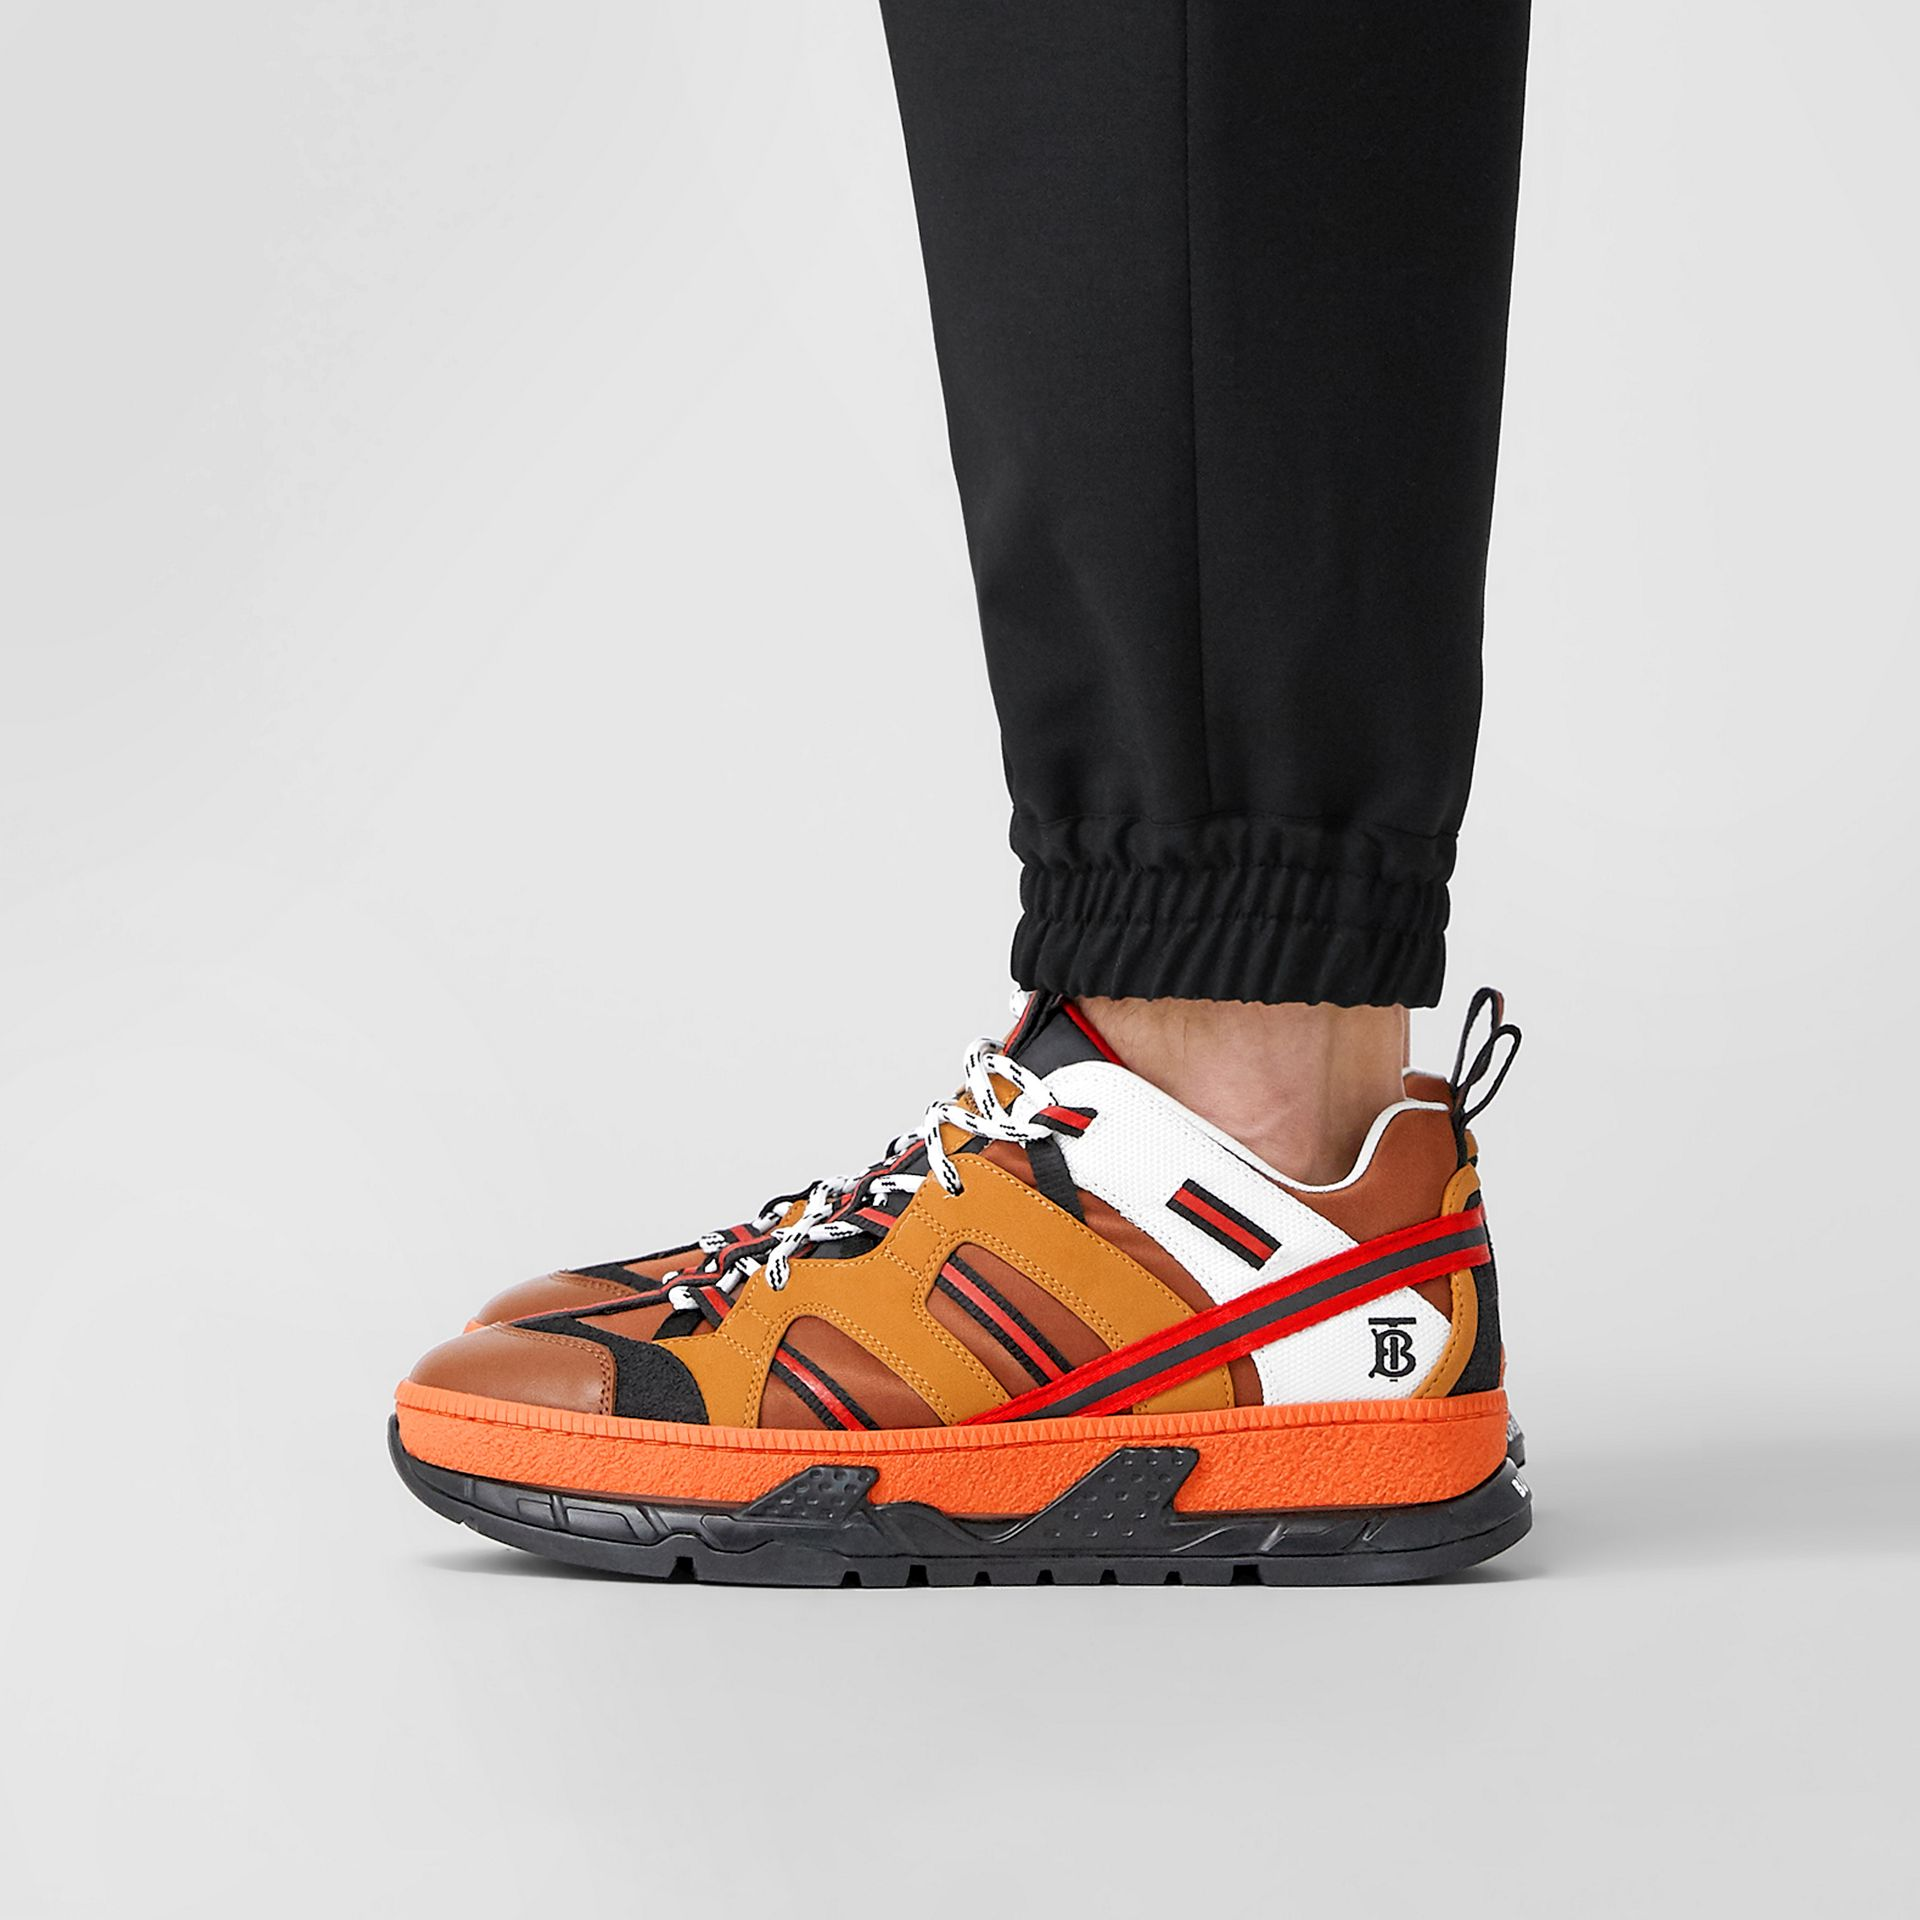 Nylon and Nubuck Union Sneakers in Orange - Men | Burberry Hong Kong S.A.R - gallery image 2